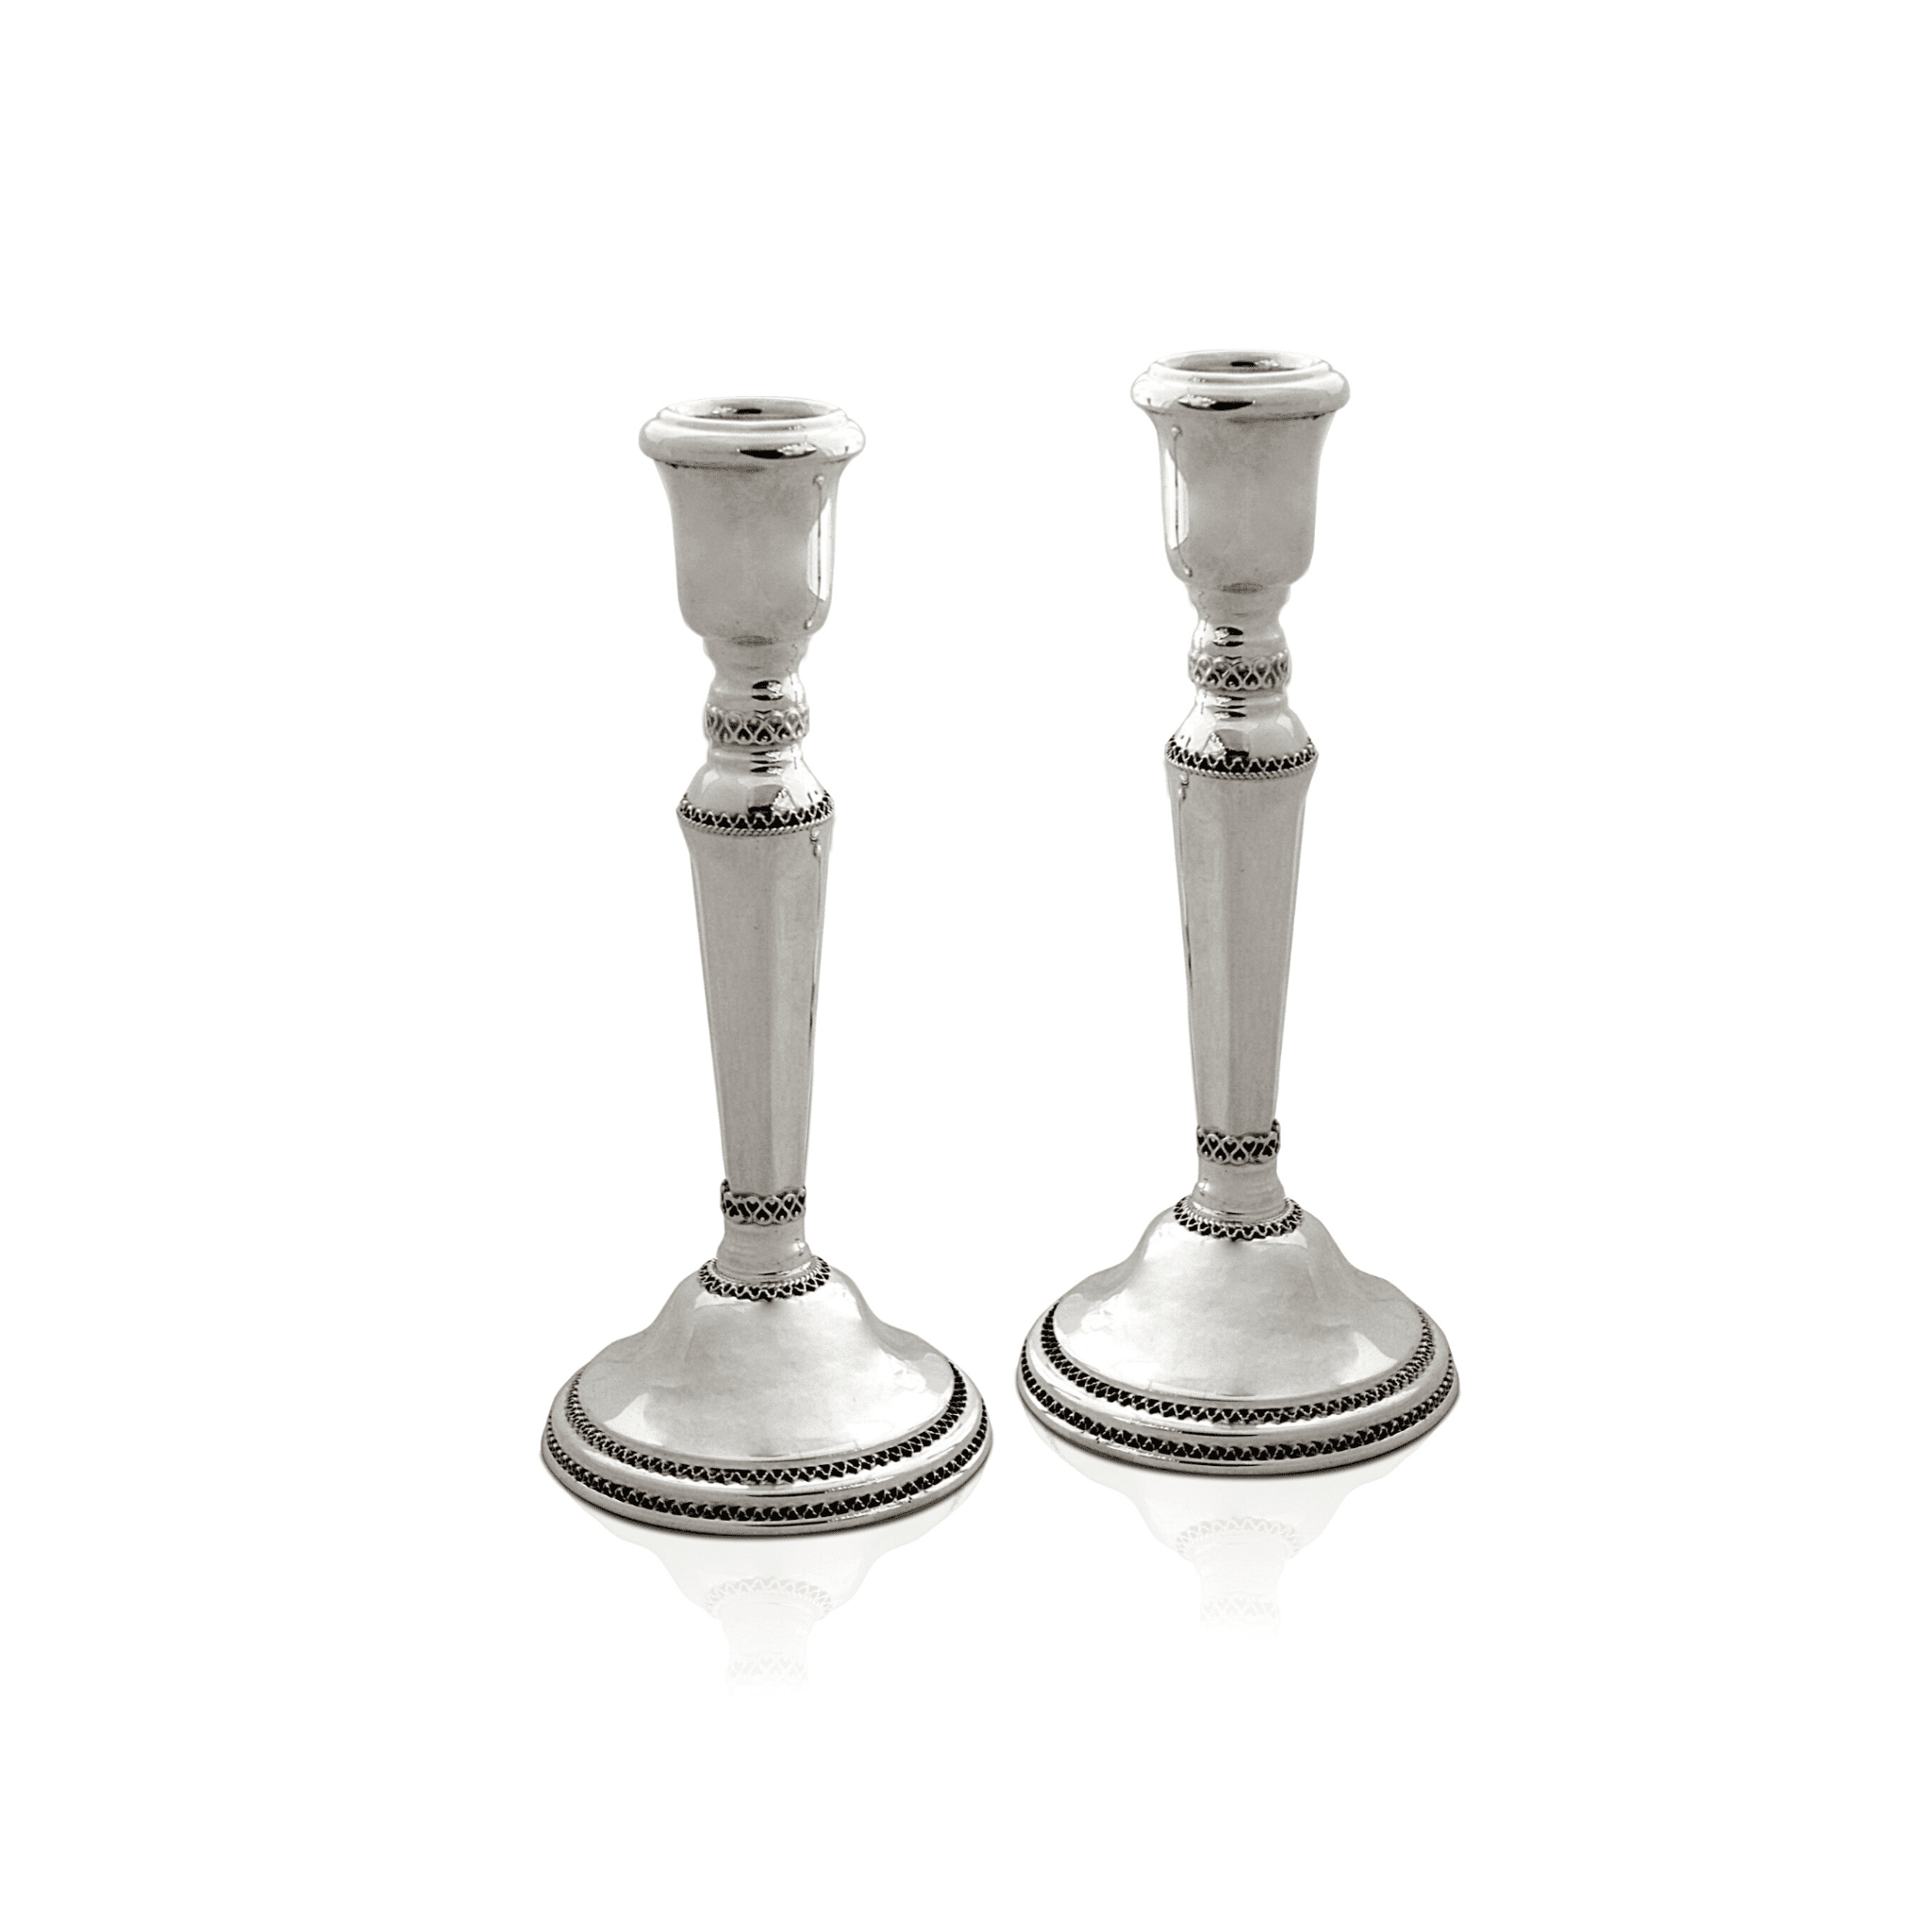 Large Filigree Shabbat Candlesticks